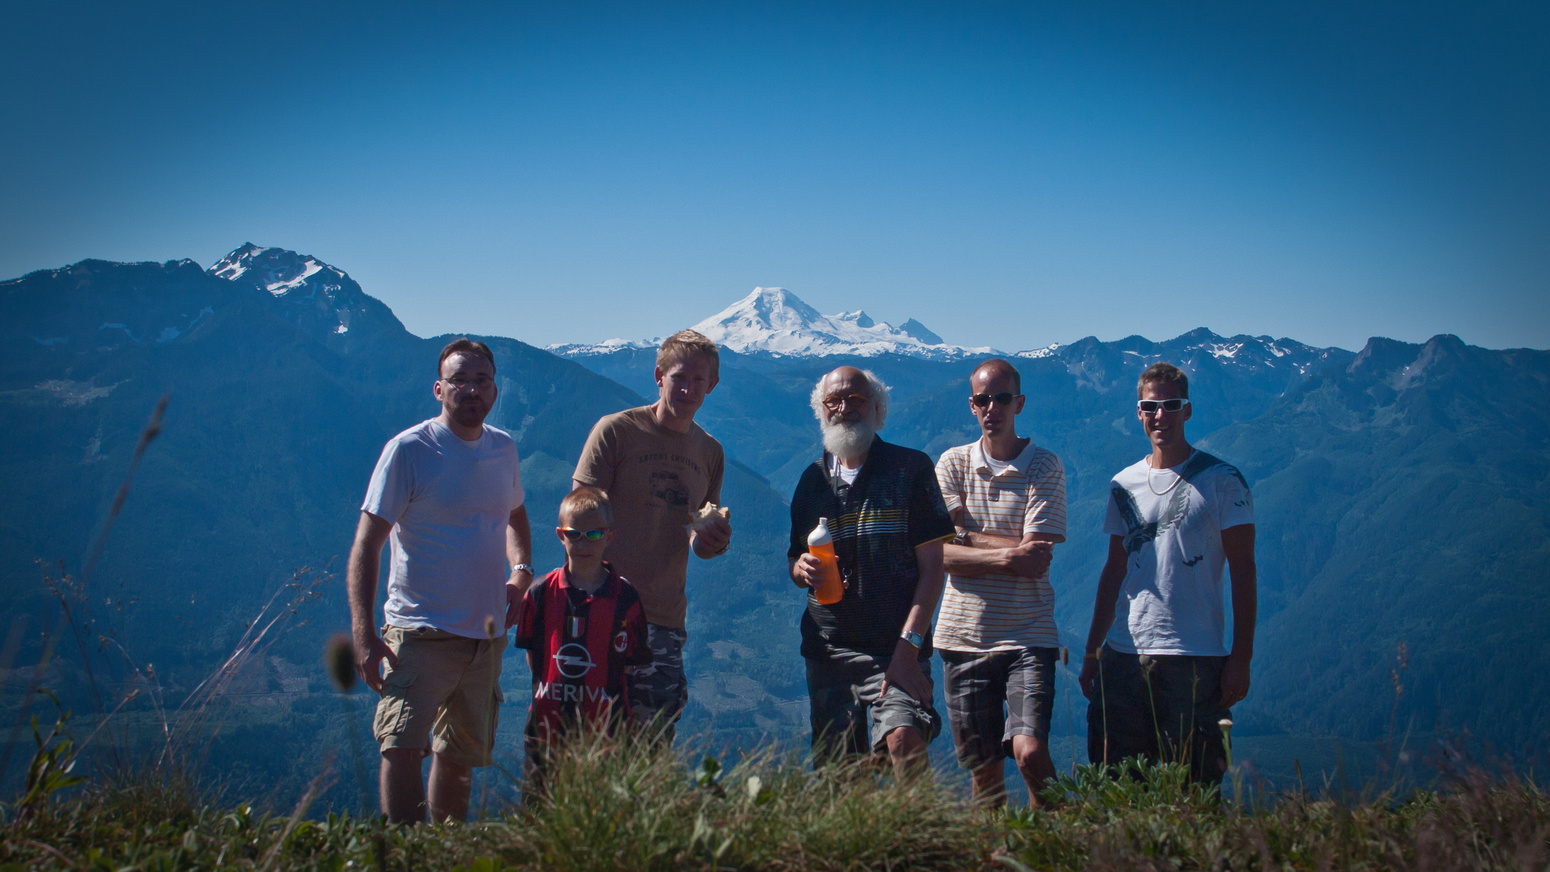 The group on the summit of Elk Mountain with Mount Baker in the background.